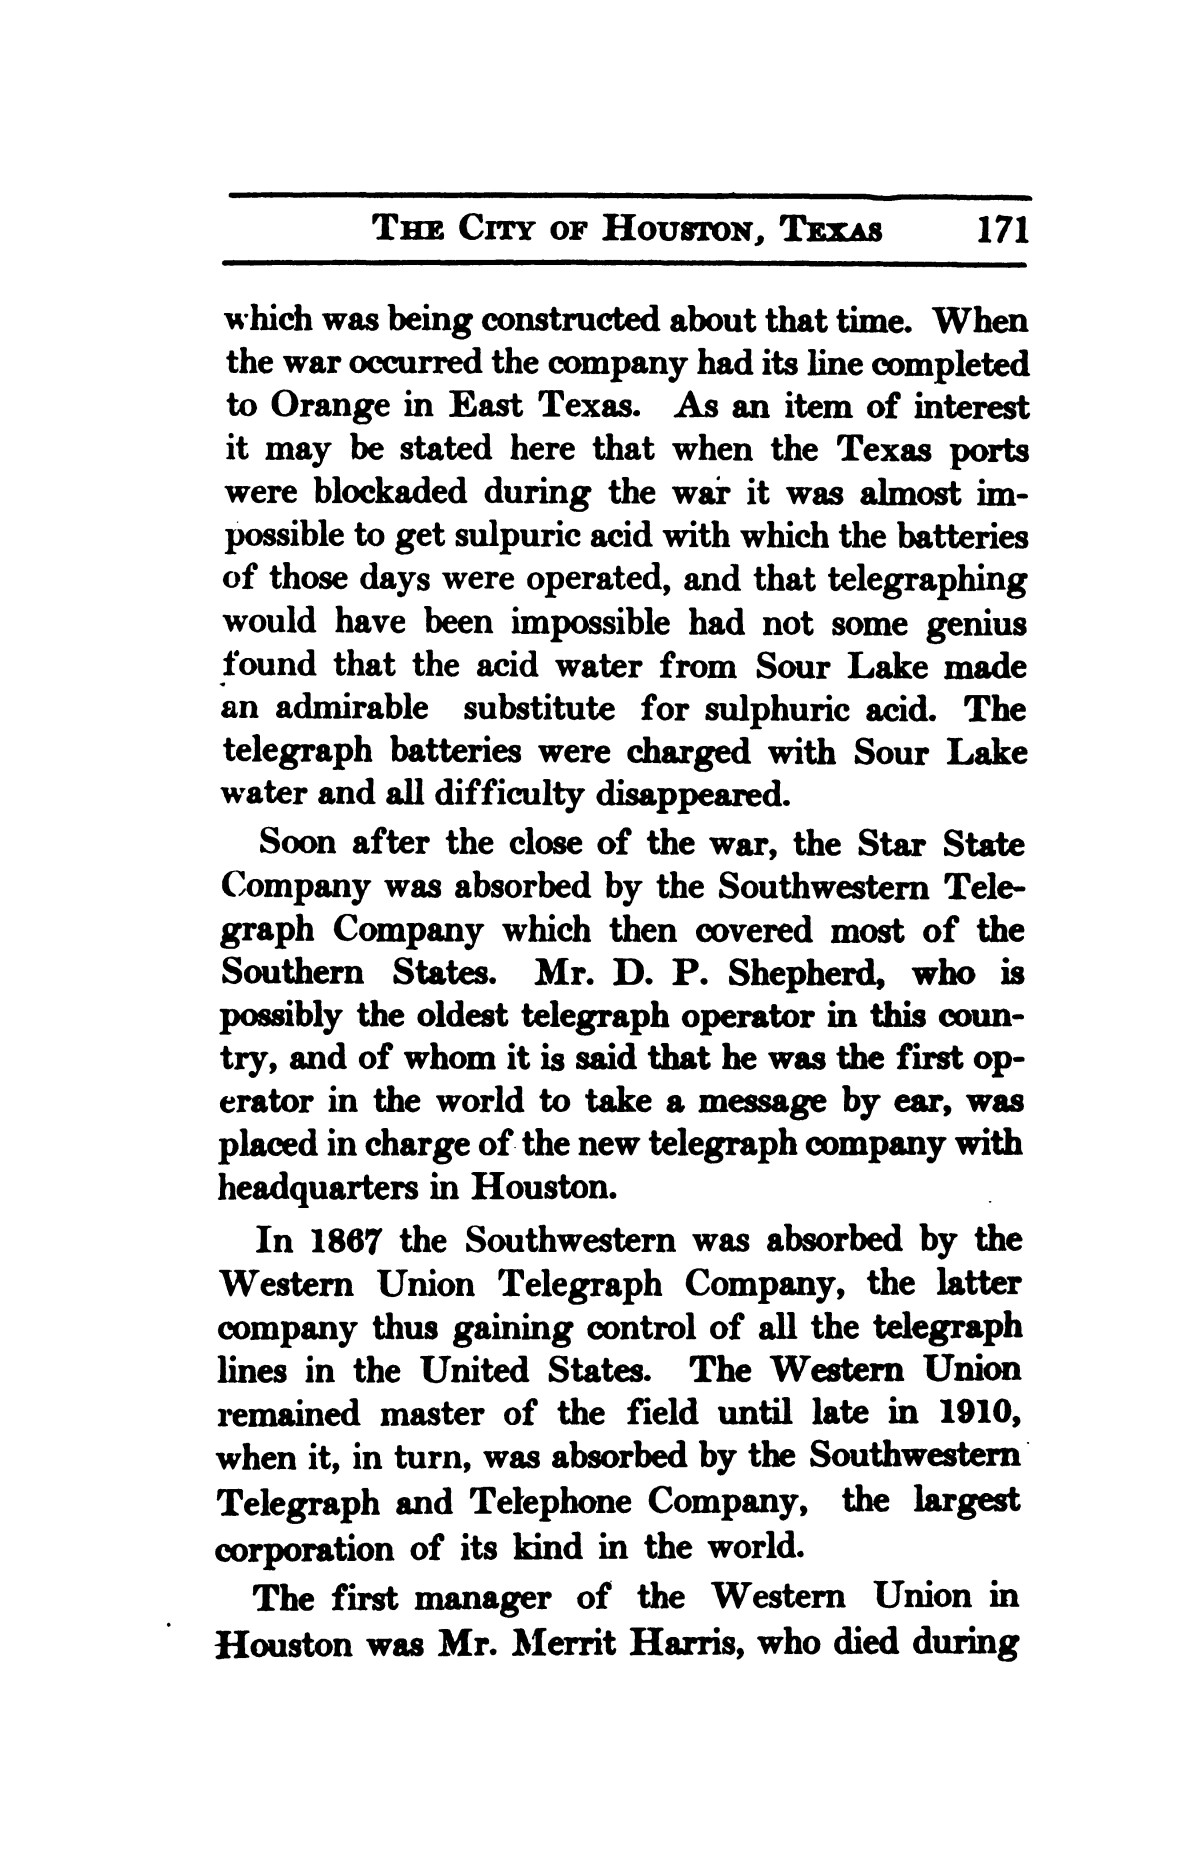 A thumb-nail history of the city of Houston, Texas, from its founding in 1836 to the year 1912                                                                                                      171